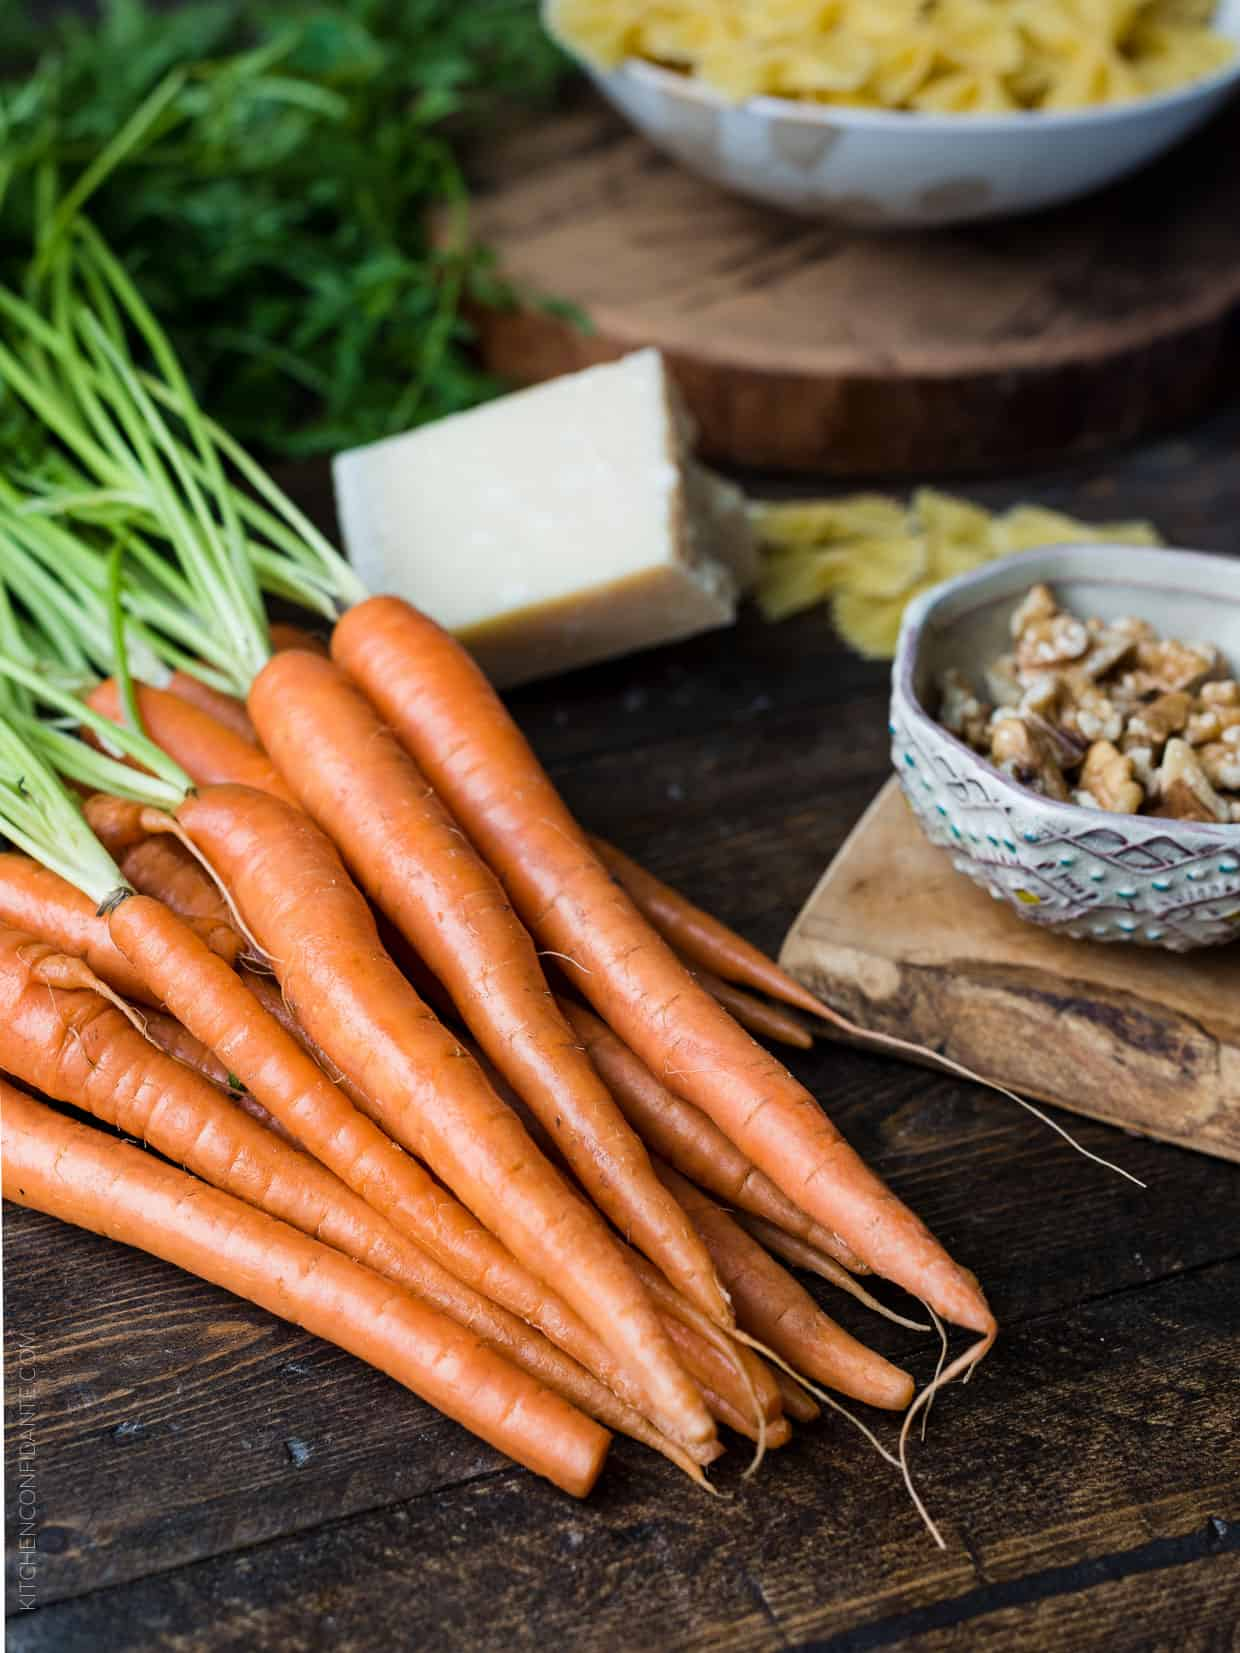 A bunch of raw carrots on a wooden surface surrounded by a block of Parmesan and a bowl of walnuts.